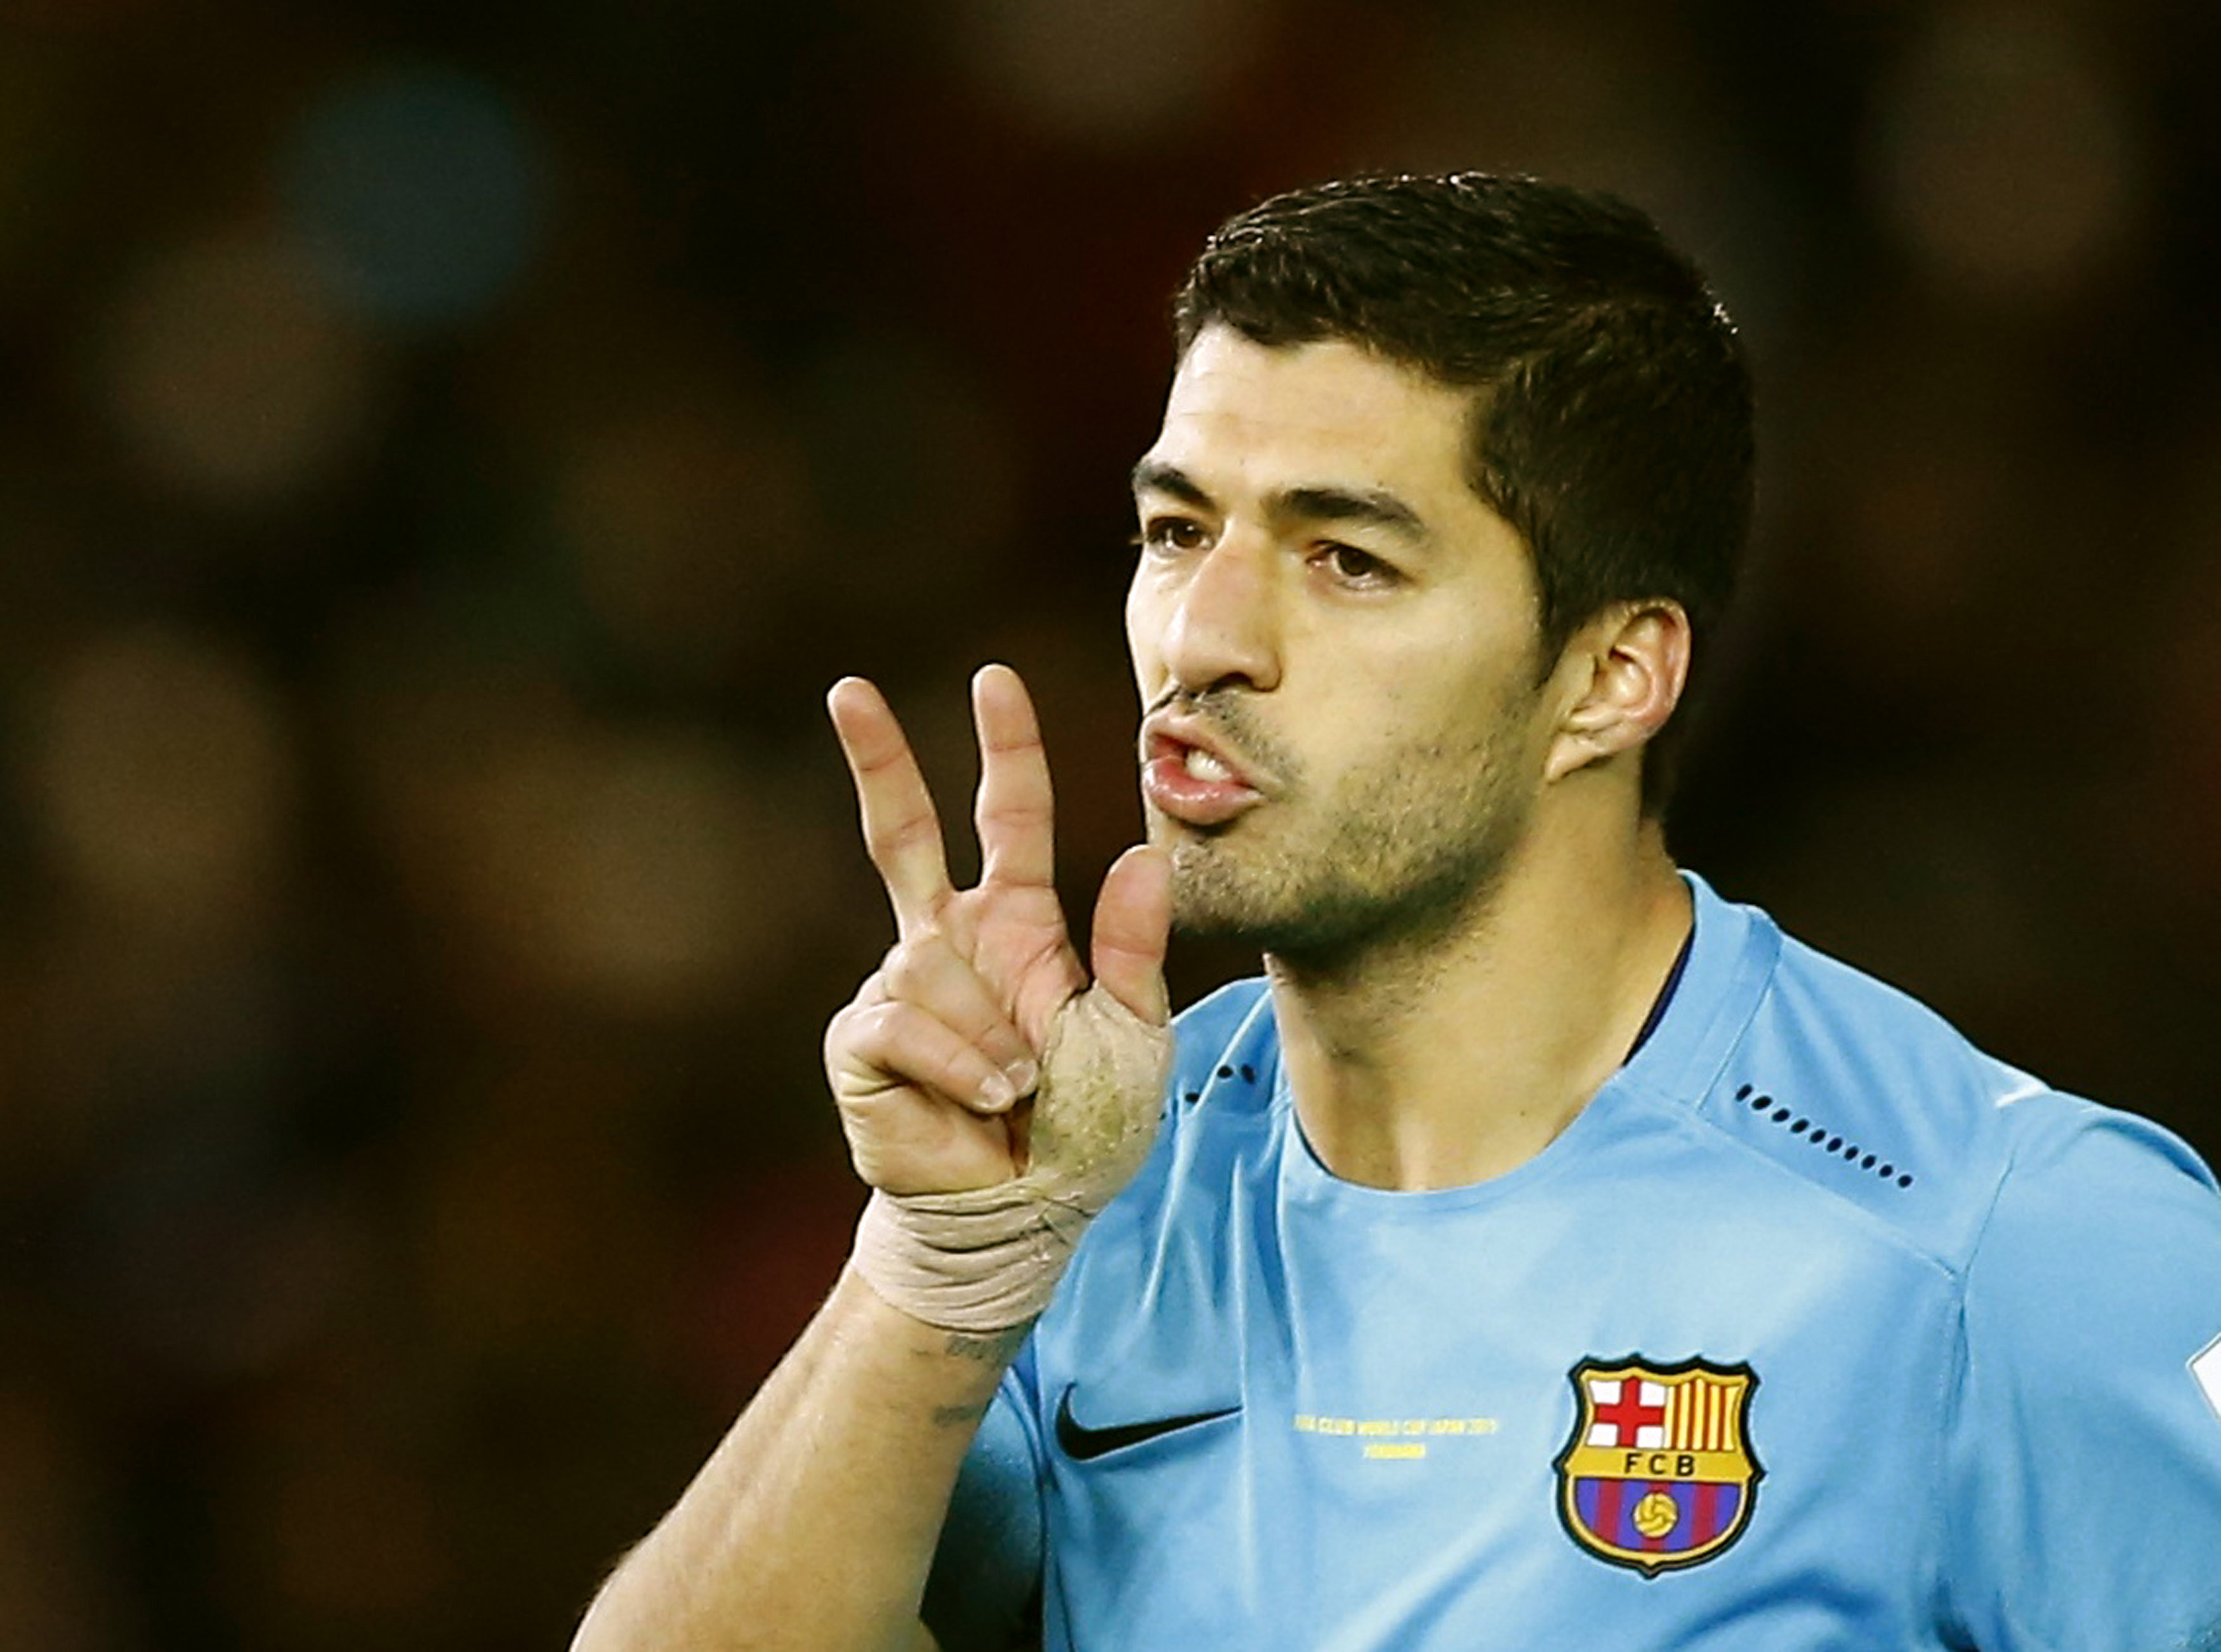 Barcelona's Luis Suarez (C) gestures after scoring the third goal for Barcelona from the penalty spot and completing his hattrick during their Club World Cup semi-final soccer match against Guangzhou Evergrande in Yokohama, south of Tokyo, Japan, December 17, 2015. Photo: Reuters